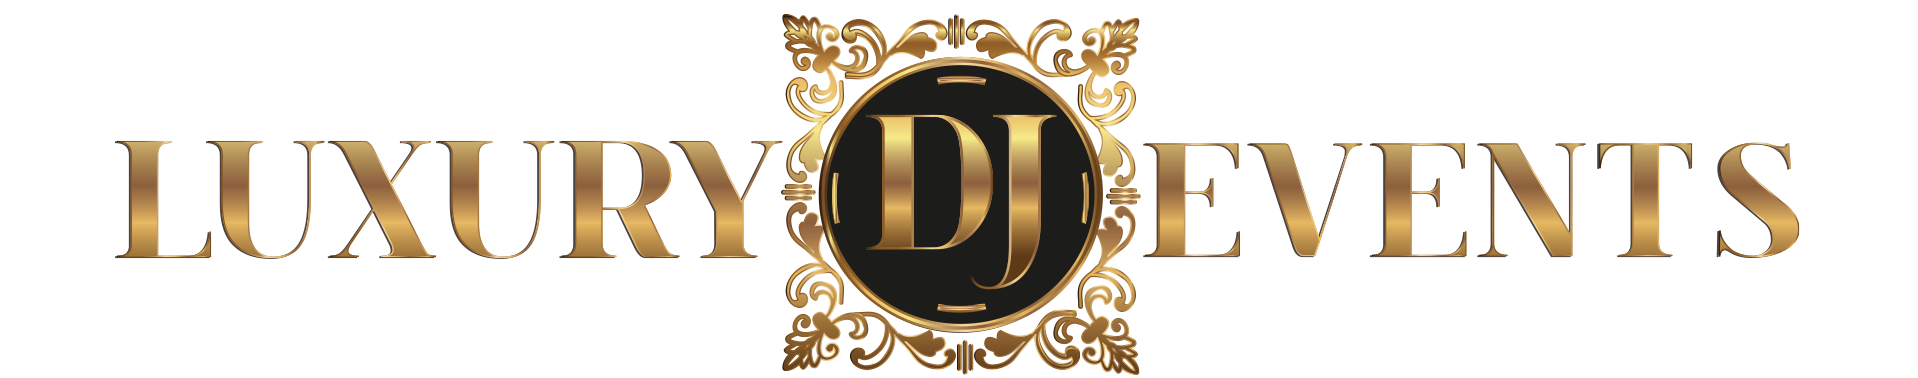 Luxury DJ Events